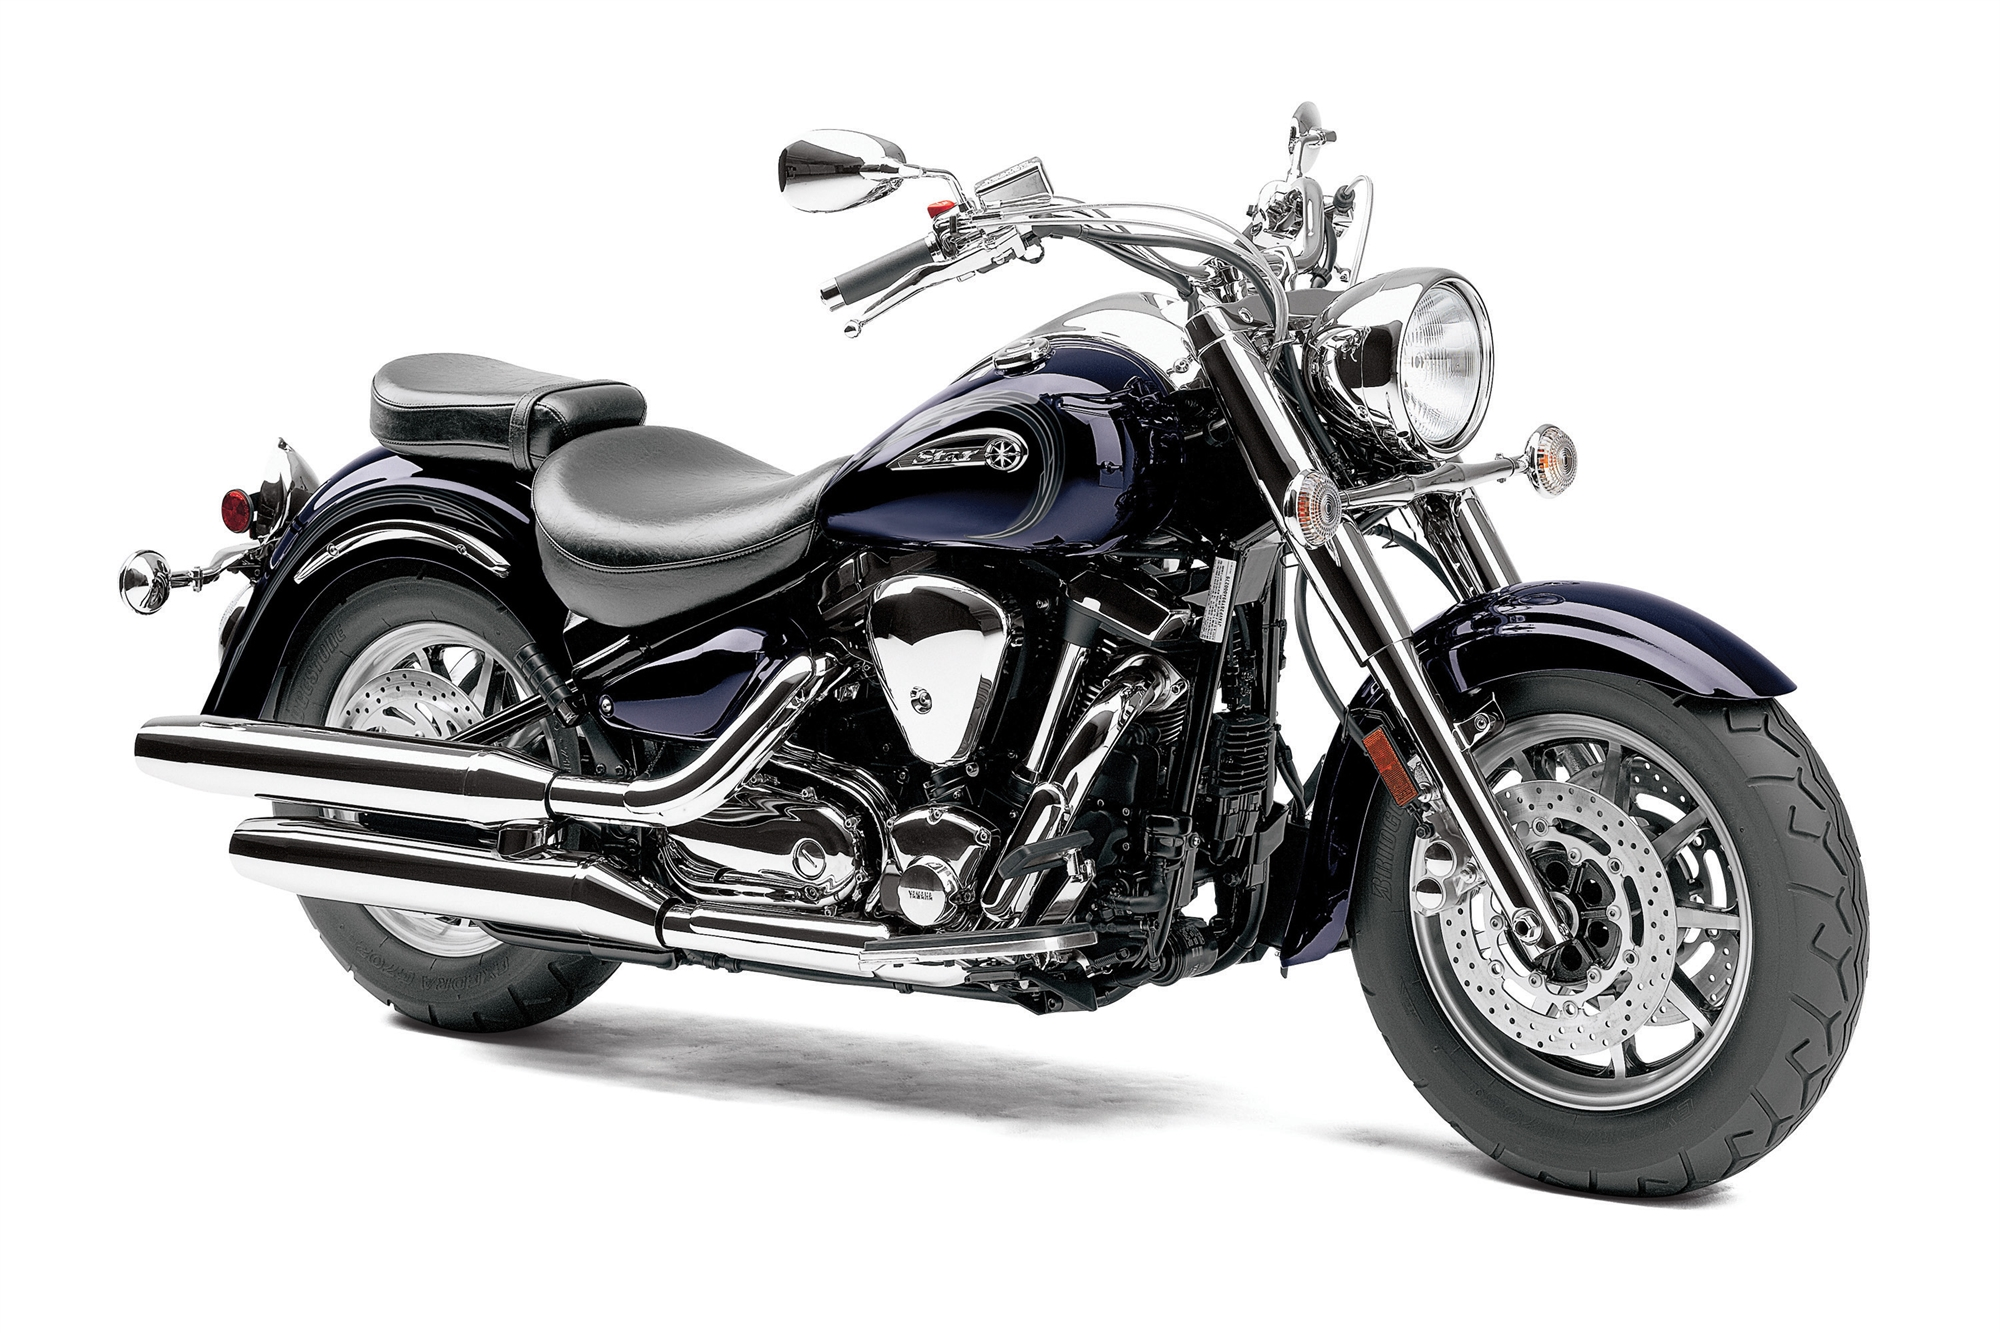 Yamaha Road Star S 2014 #2